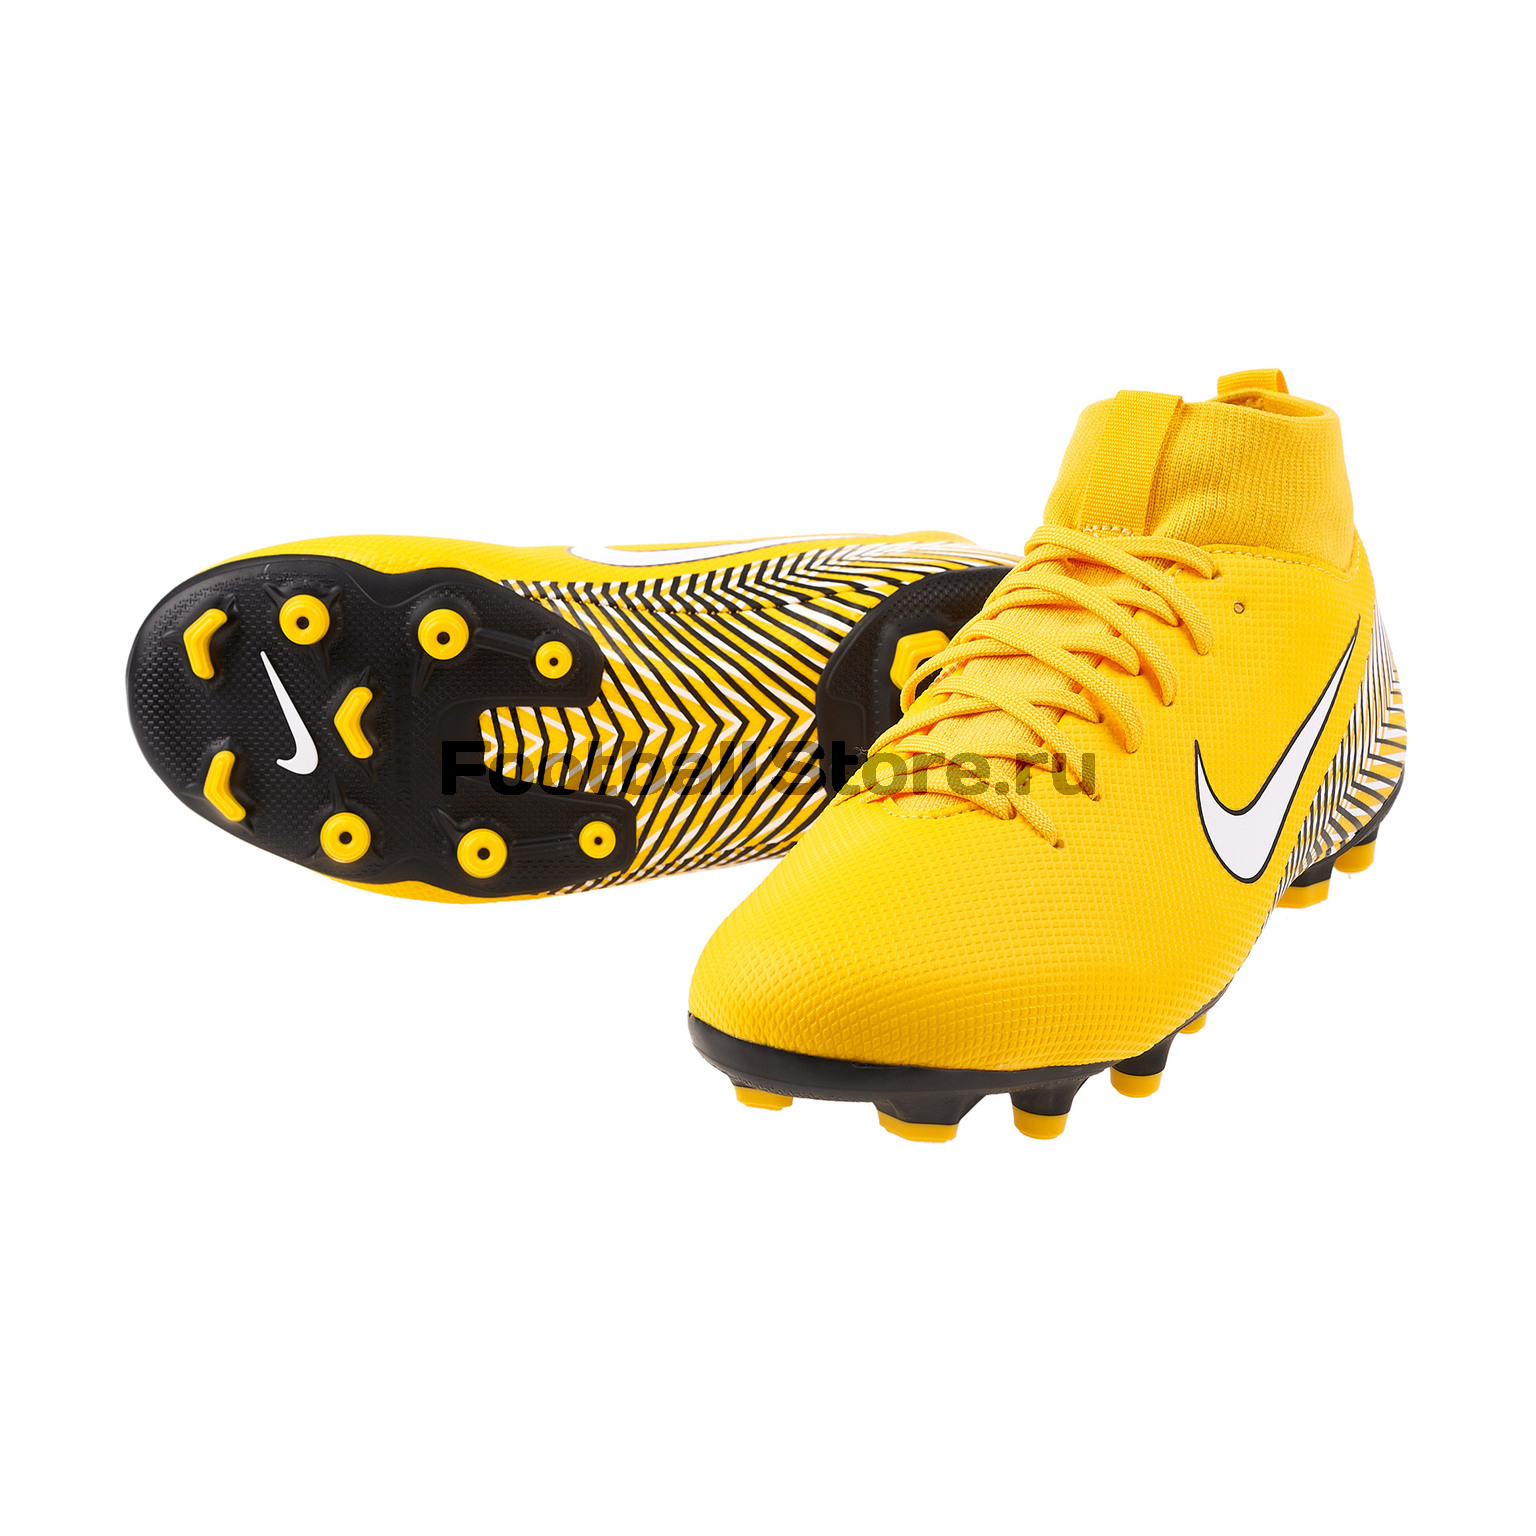 Бутсы детские Nike Superfly 6 Academy Neymar FG/MG AO2895-710 бутсы nike superfly 6 elite fg ah7365 060